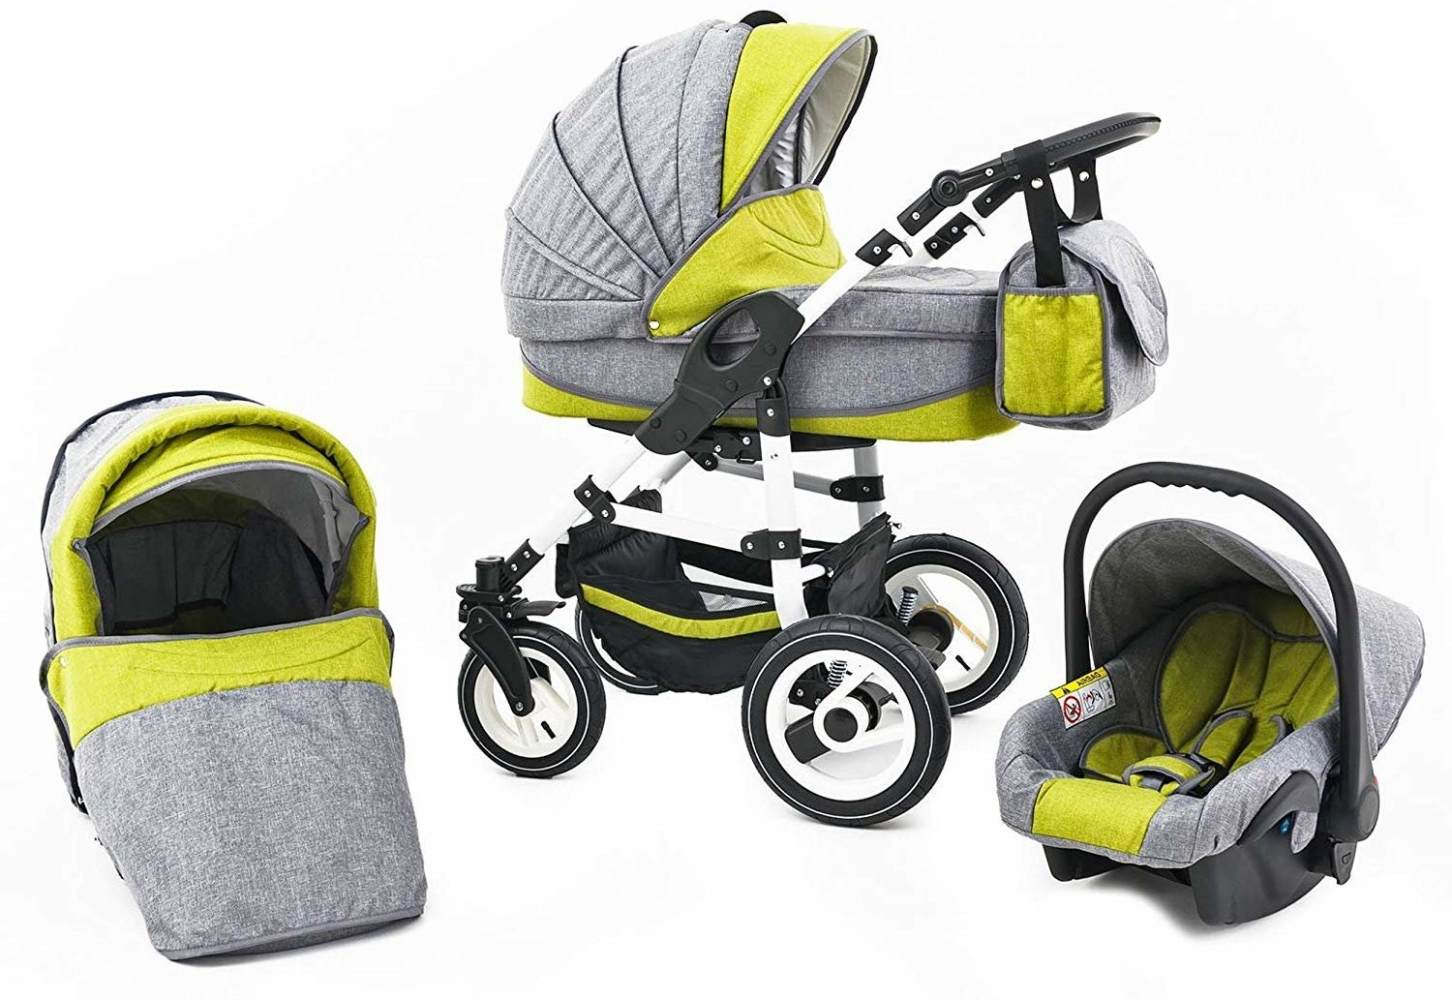 Tabbi ECO LN - 3 in 1 Kombi Kinderwagen Luft Yellow Bild 1